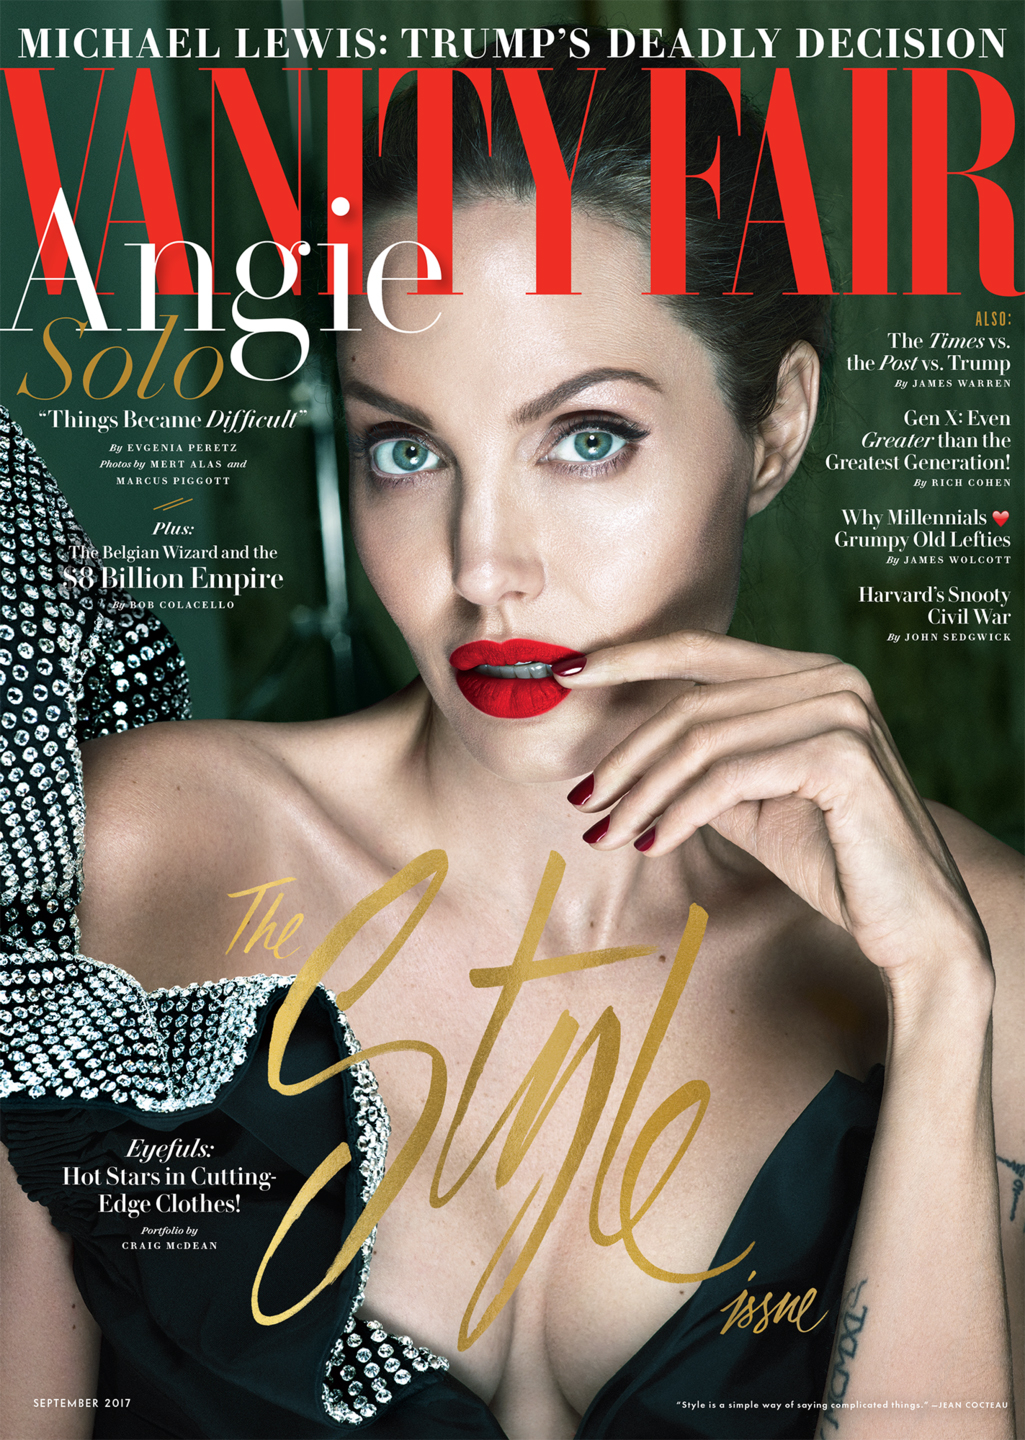 Angelina Jolie on the cover of Vanity Fair